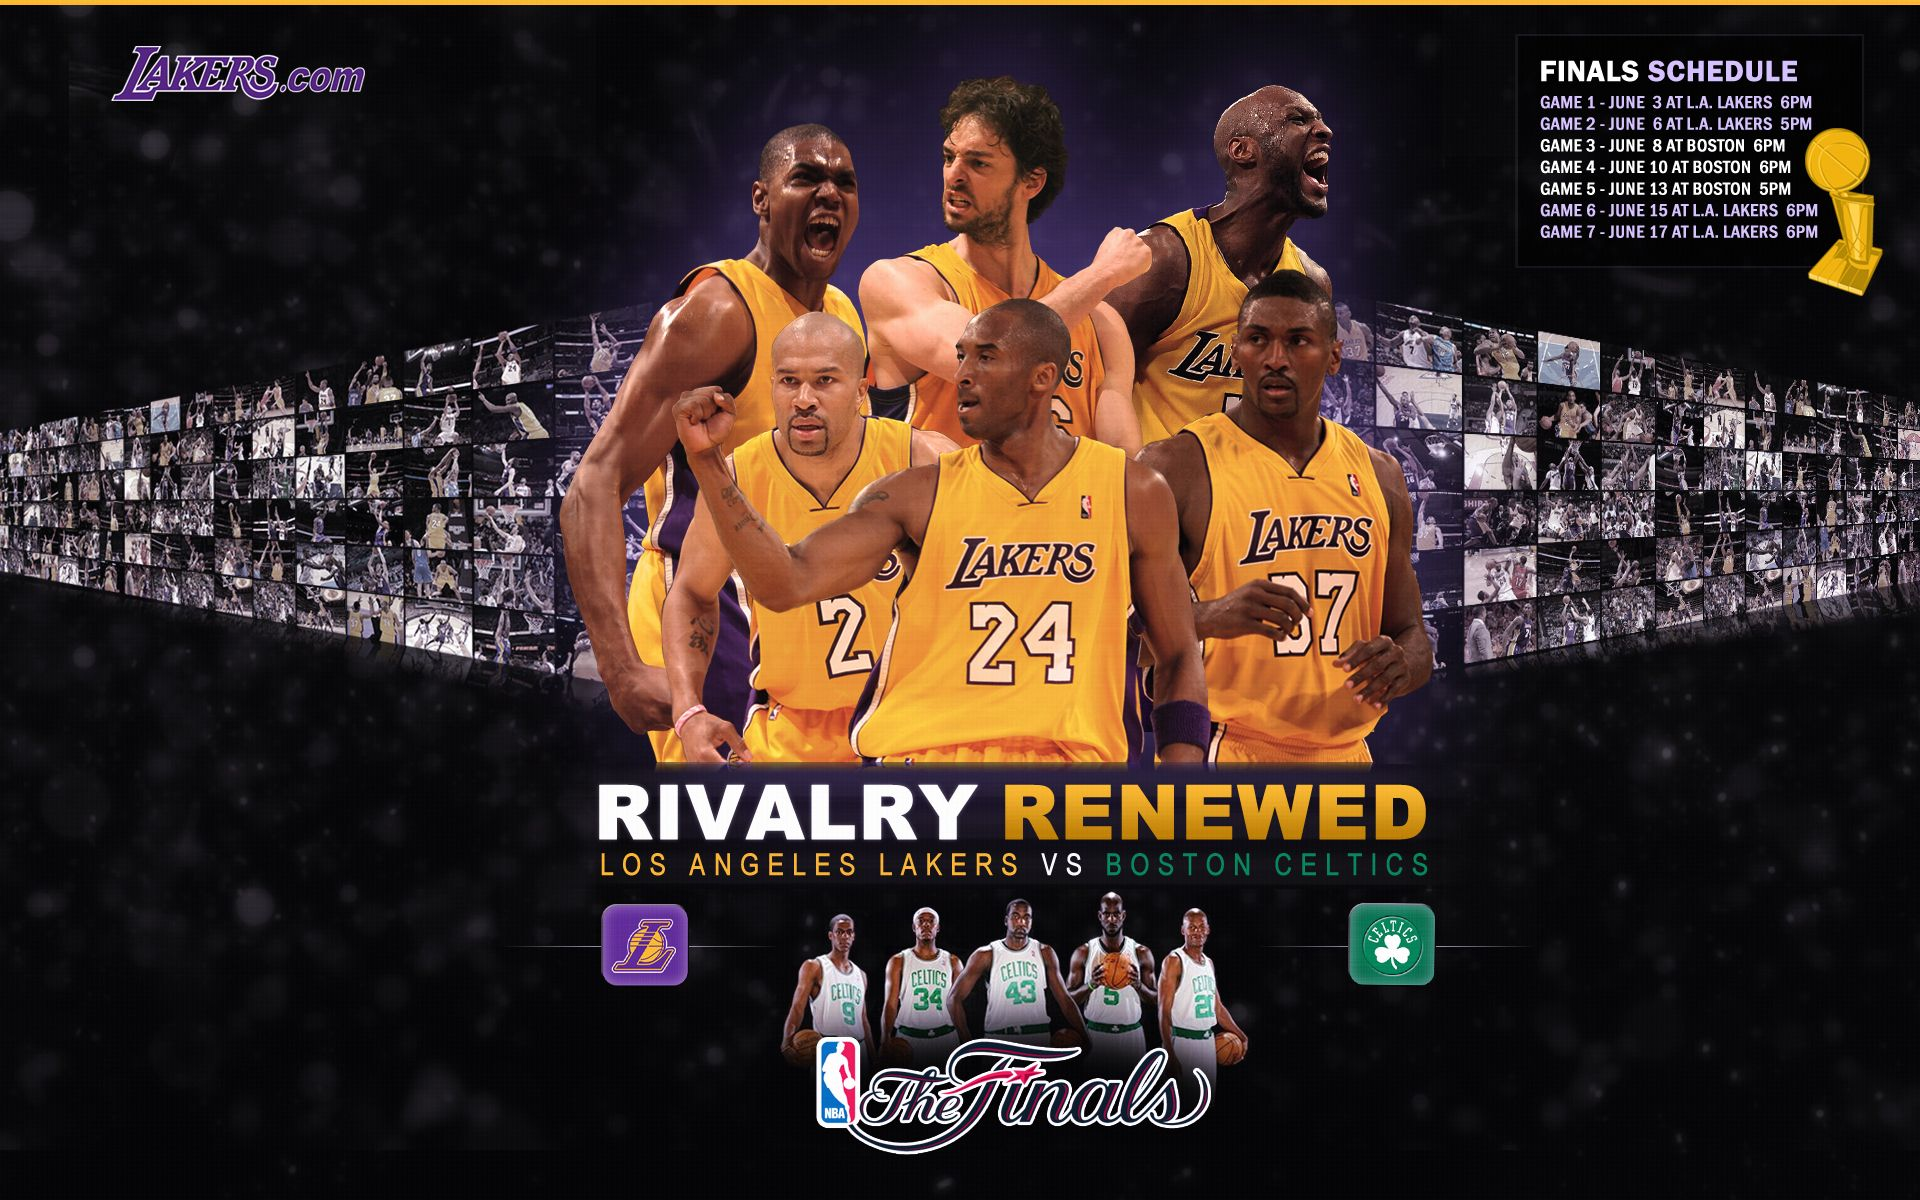 La Lakers New Wallpaper Live Wallpaper Hd La Lakers Lakers Vs Kobe Bryant Wallpaper